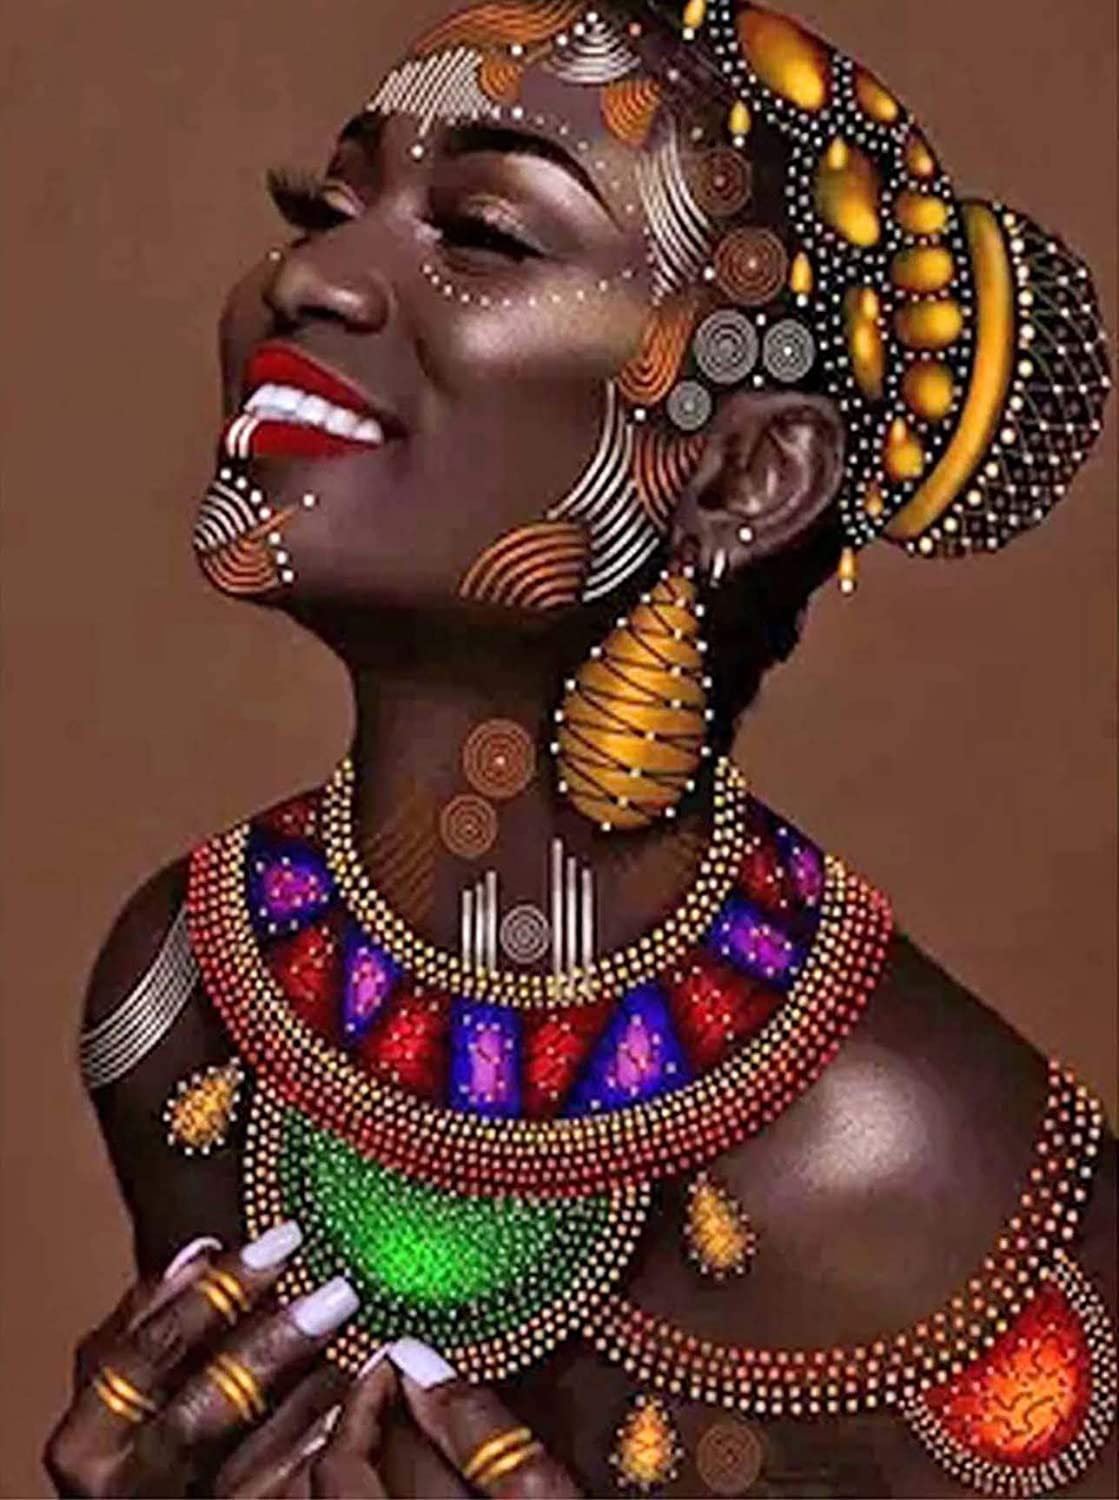 Palodio DIY 5D Character African Woman Diamond Painting Round Full Diamond, Smile Black Complexion Embroidery Cross Stitch Art Crafts Canvas Household Wall Decoration 12x16 Inch